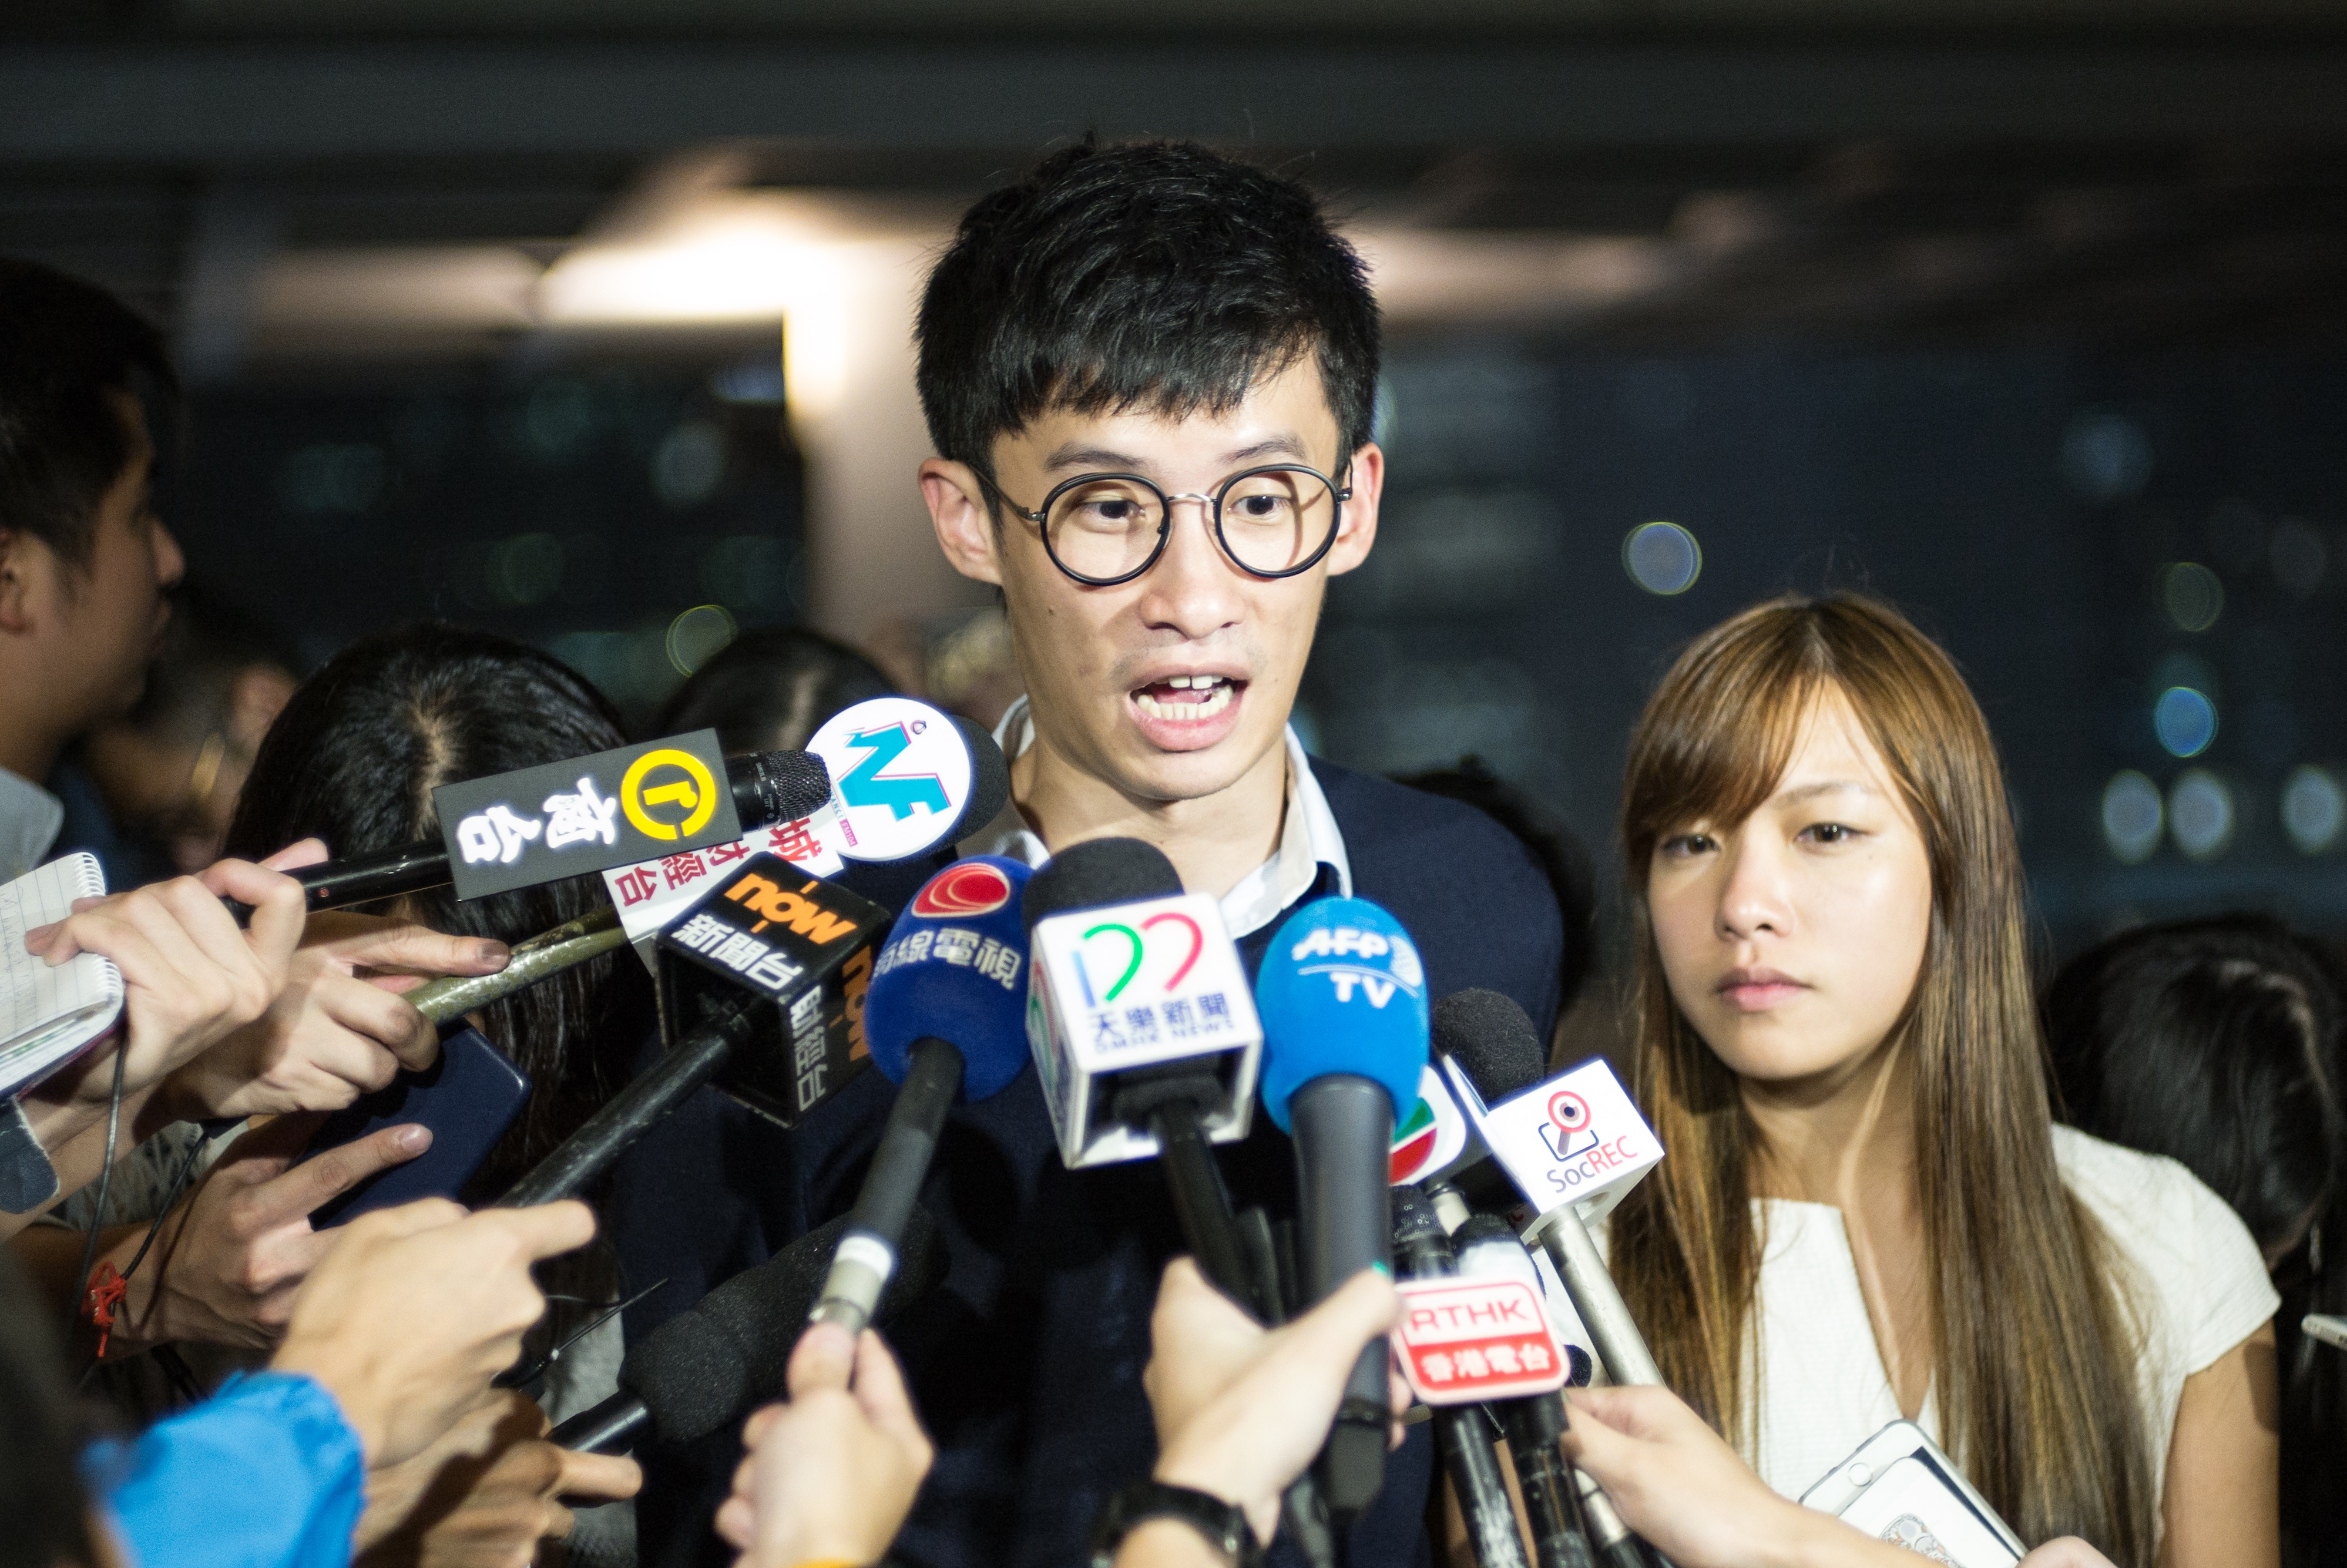 Newly-elected pro-independence Hong Kong lawmakers Sixtus  Baggio  Leung (C) and Yau Wai-ching (R) speak to the press outside the territory's High Court, Oct. 18, 2016.